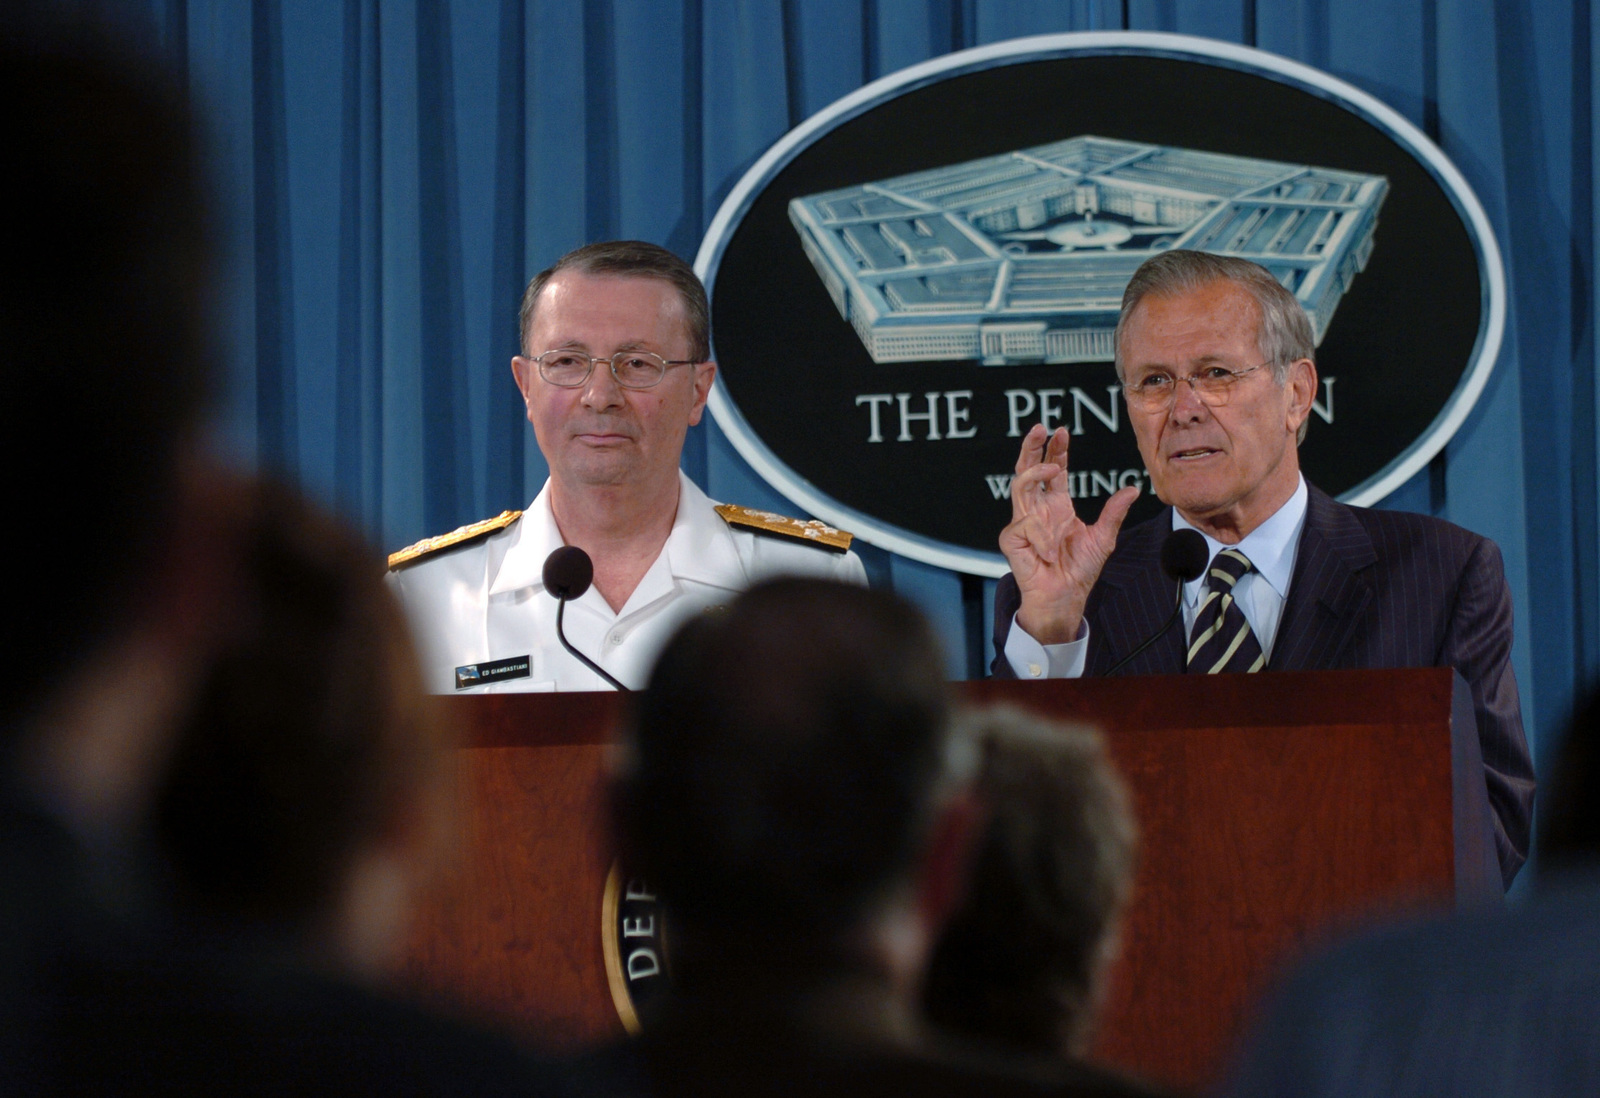 The Honorable Donald H. Rumsfeld (right), U.S. Secretary of Defense, and U.S. Navy Adm. Edmund Giambastiani (left), Vice Chairman of the Joint Chiefs of STAFF, address questions from the media in the Pentagon Press room, Washington, D.C., on May 9, 2006. (DoD photo by STAFF SGT. Myles D. Cullen) (Released)